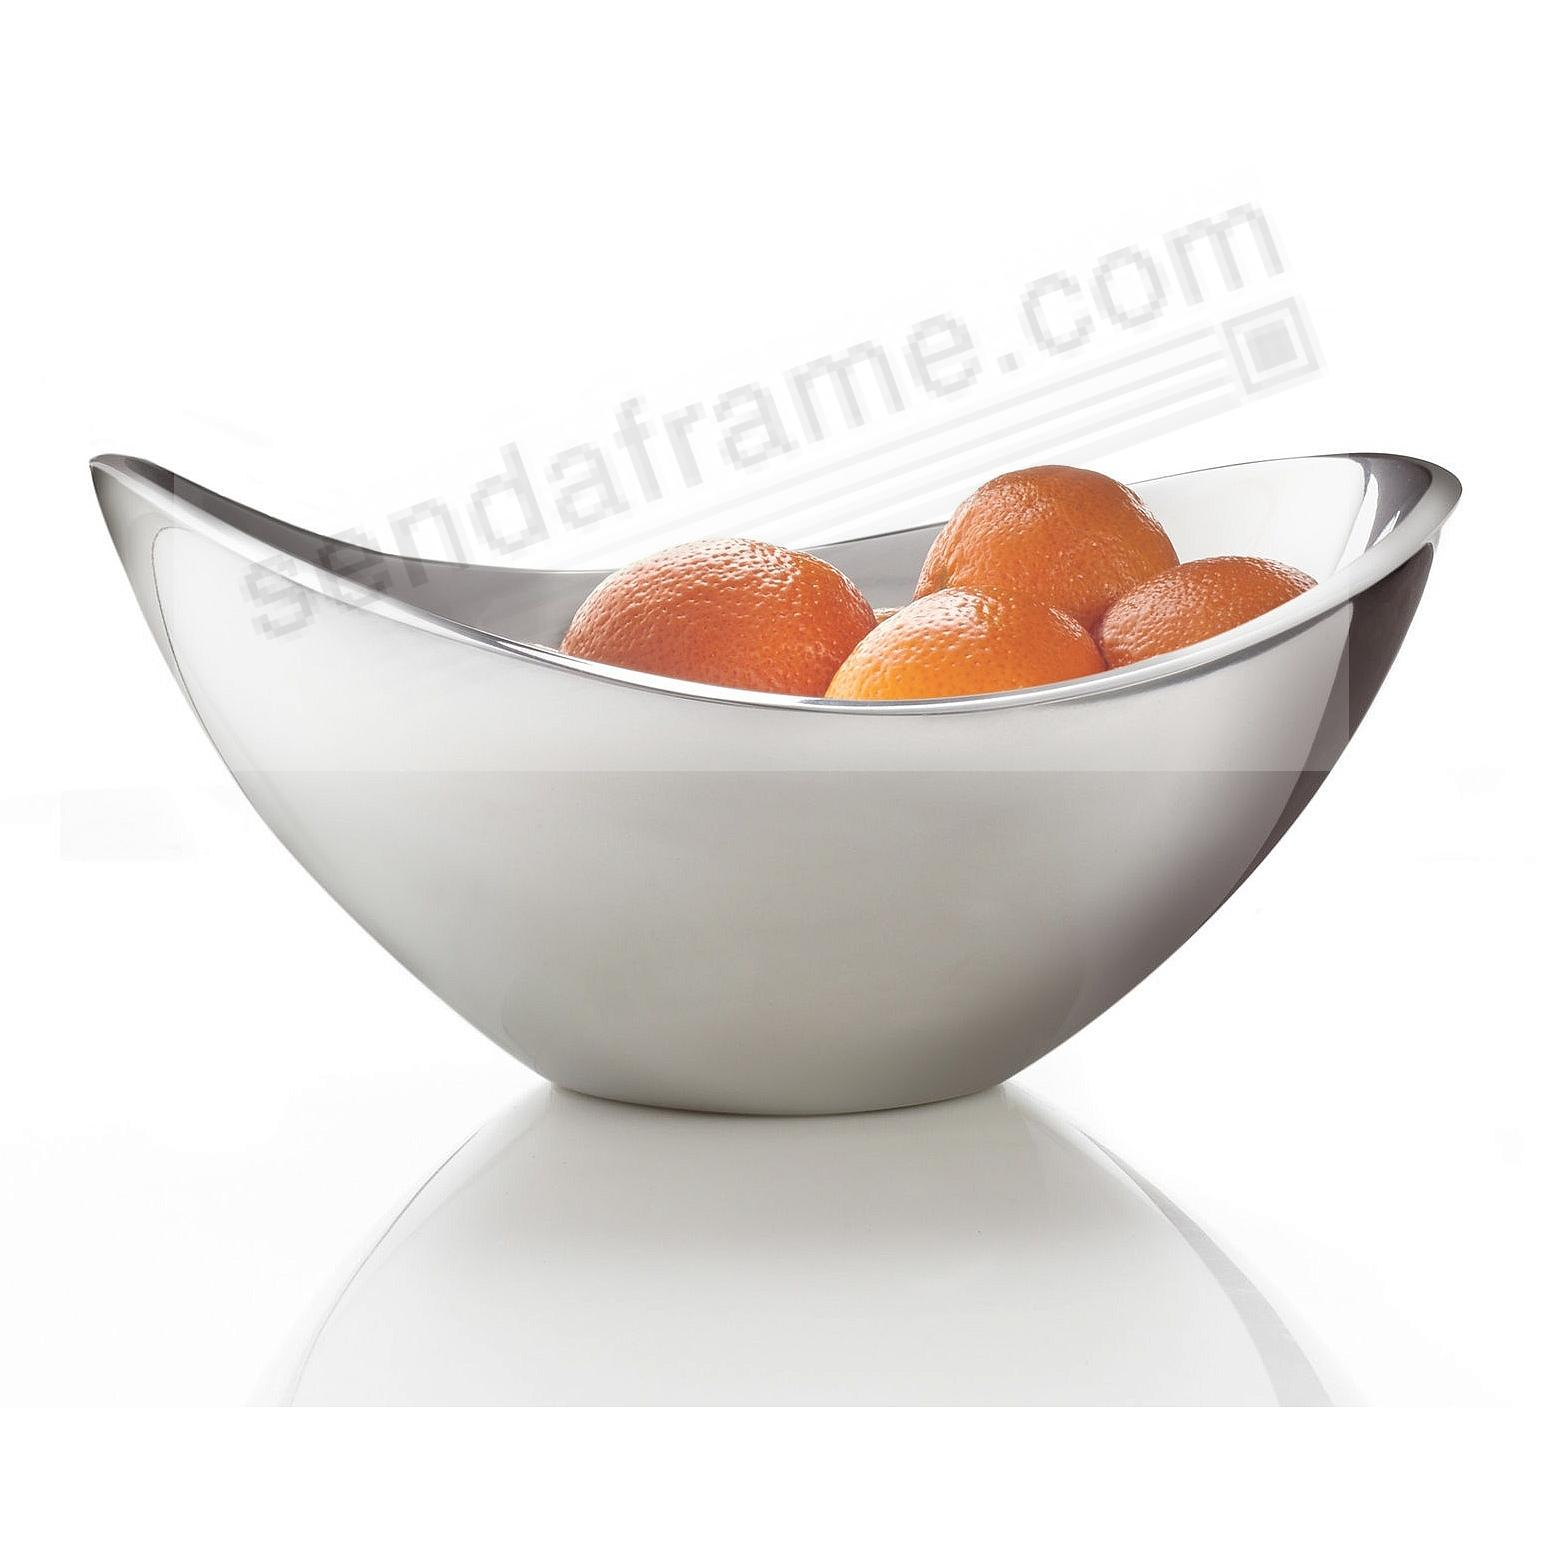 The Original BUTTERFLY 9-inch/1-qt BOWL crafted by Nambe®